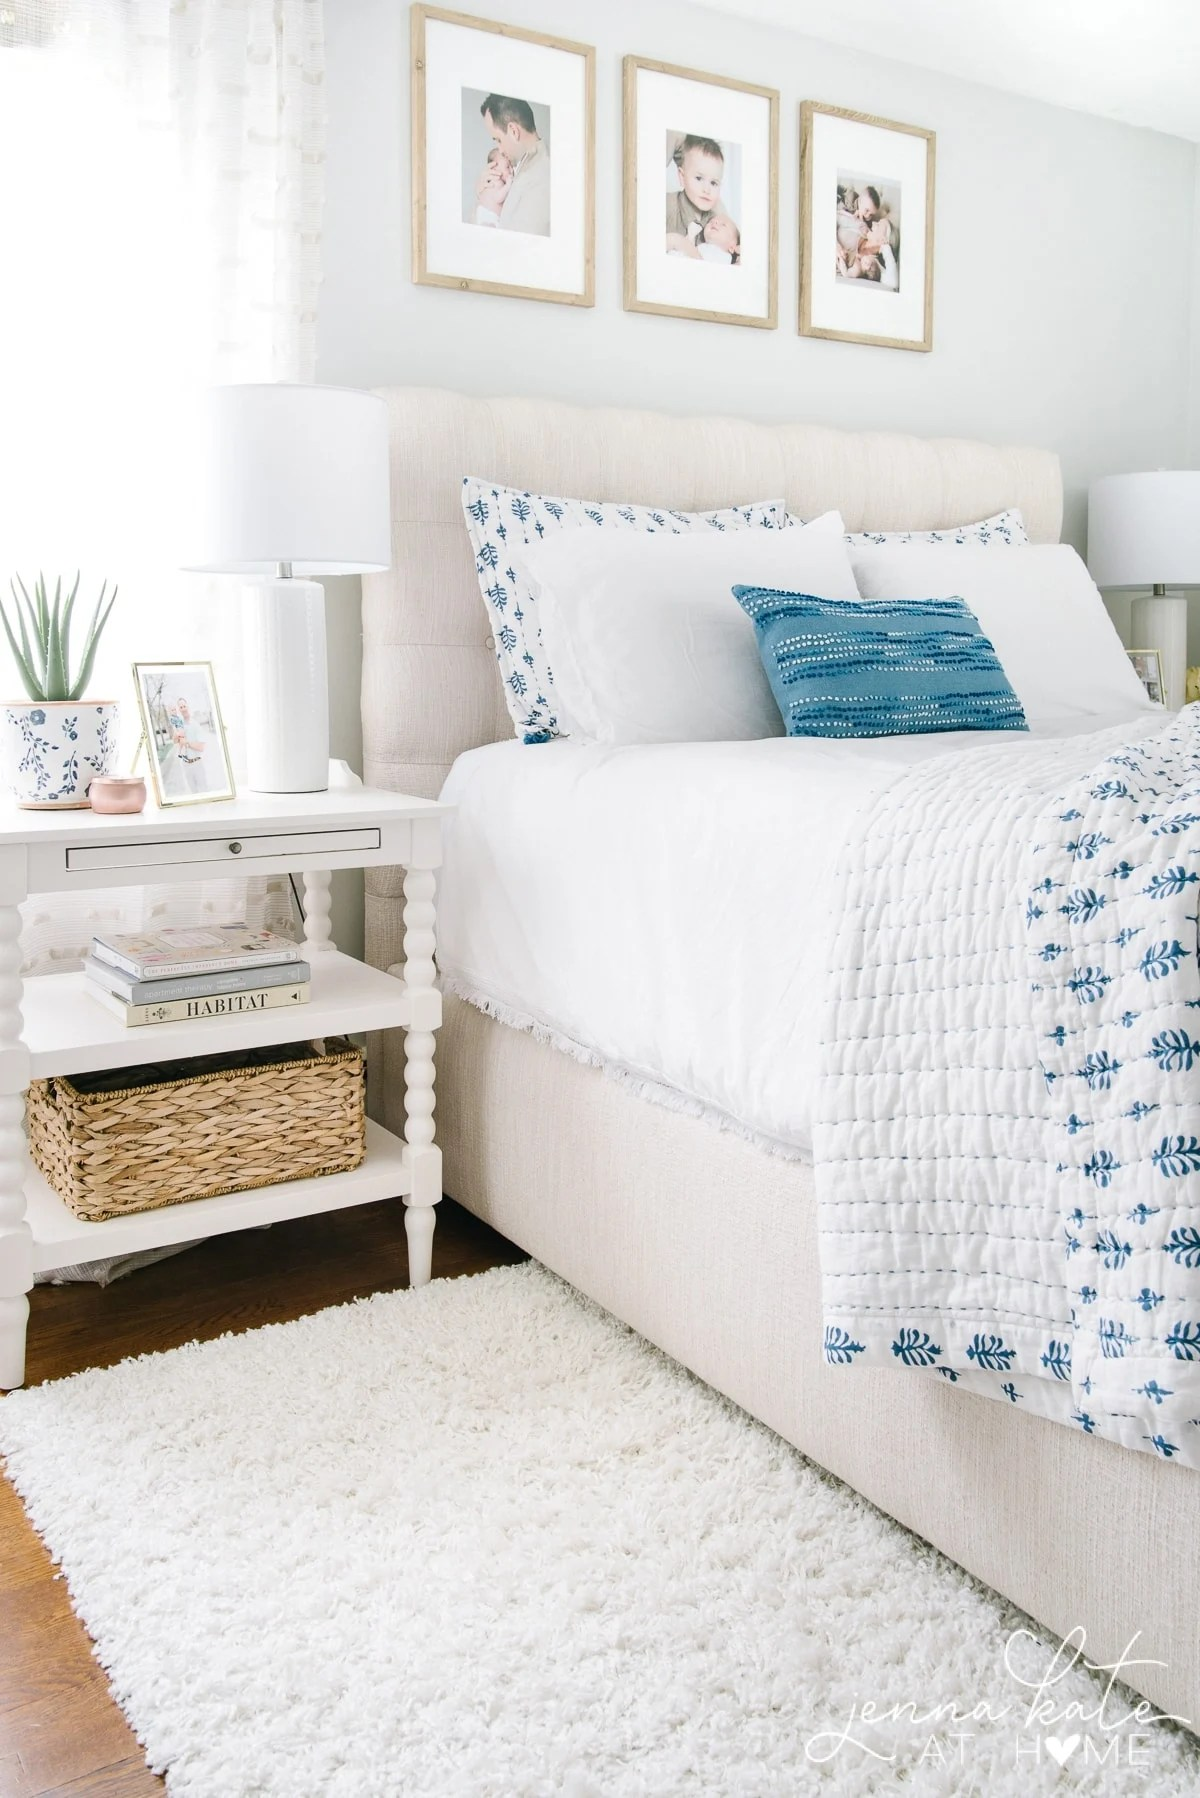 2019 Summer Home Tour featuring this light and bright master bedroom